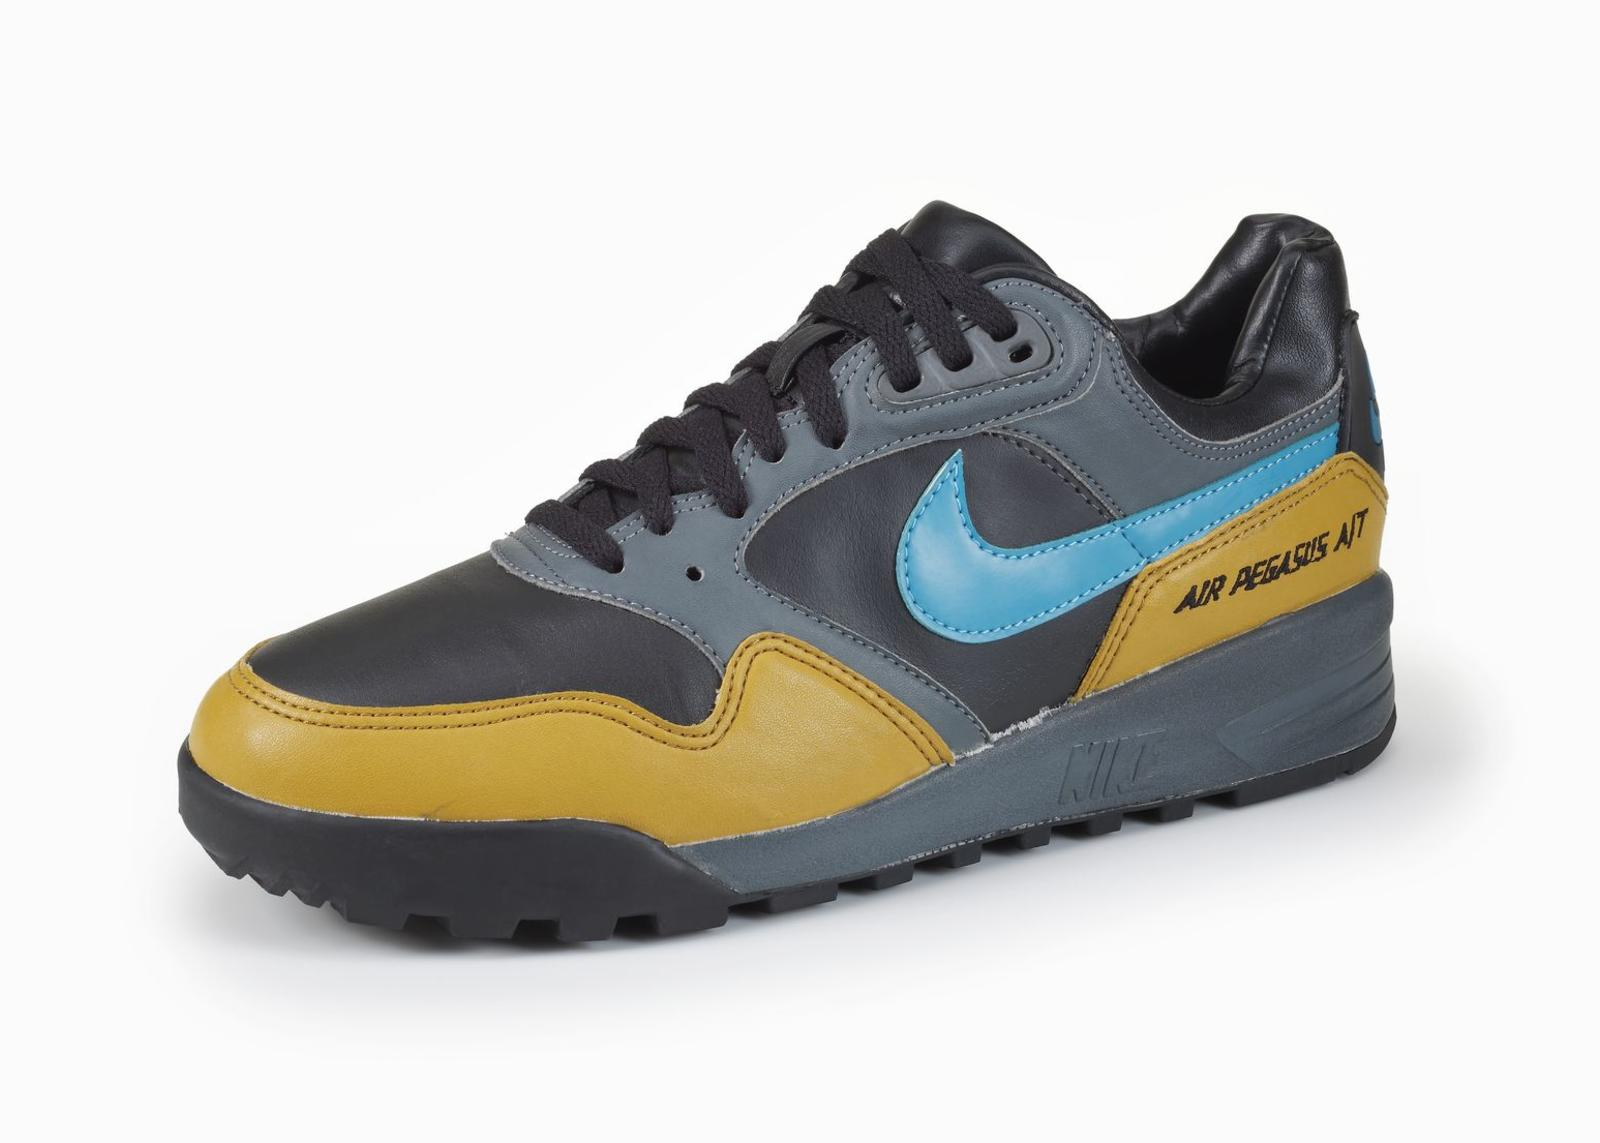 newest fe0cd 02749 10 Things You Didn't Know About the Nike Pegasus - Nike News